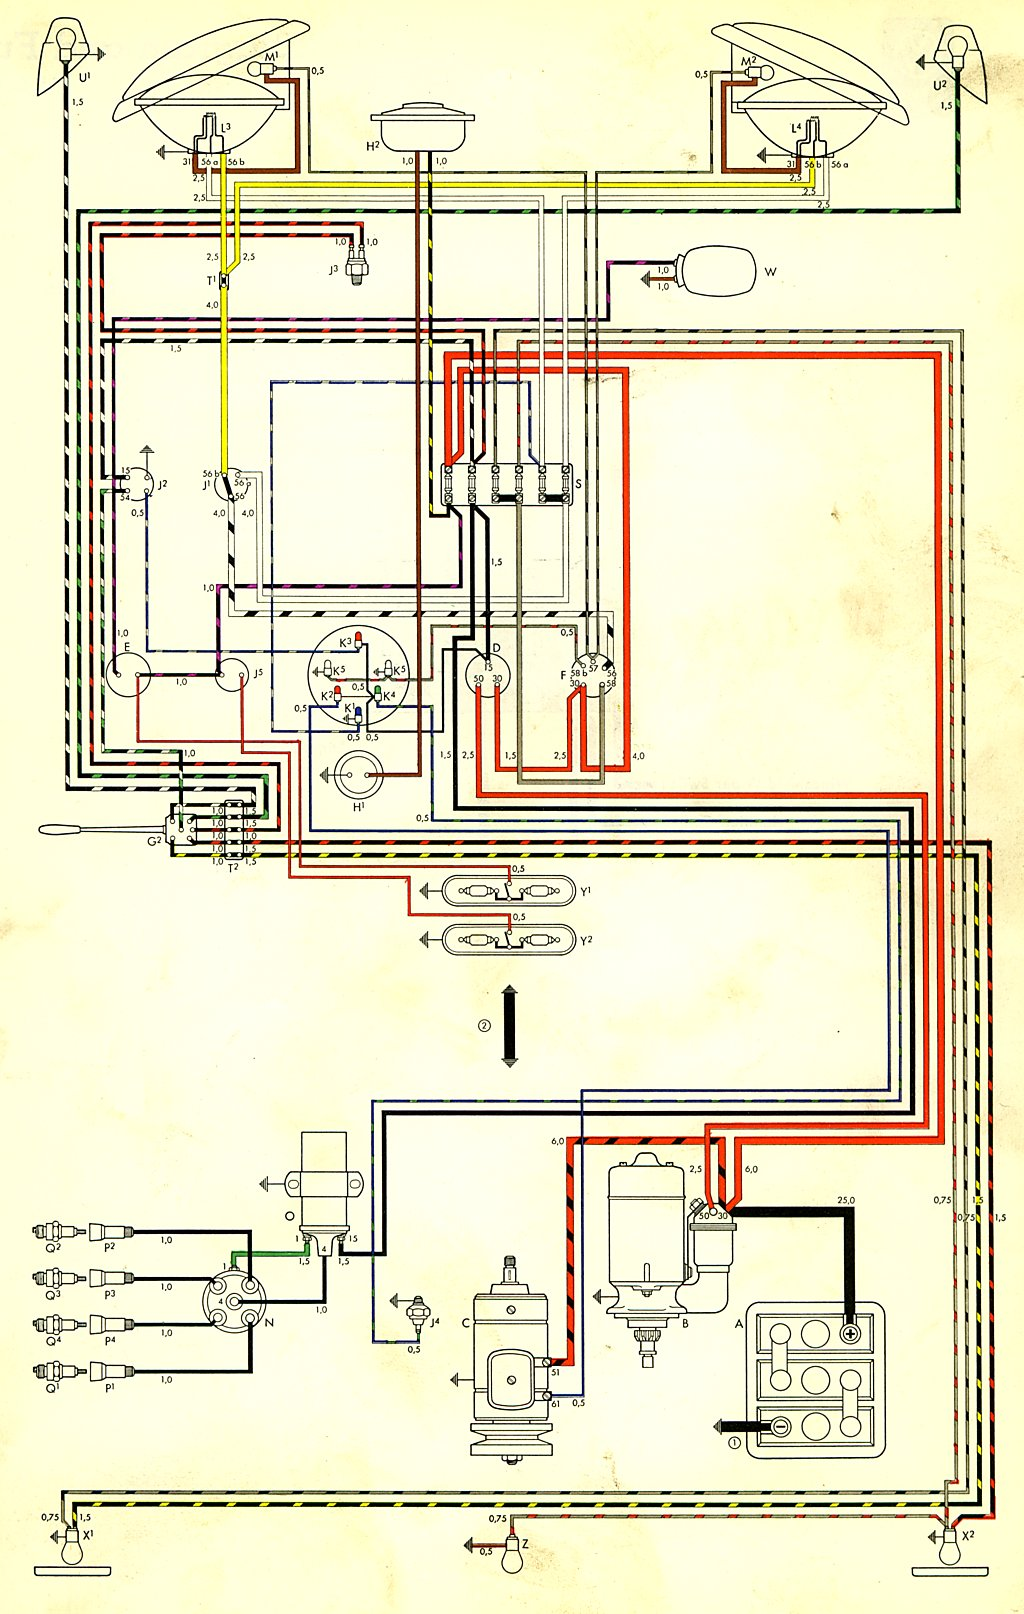 bus_59_USA 1959 bus wiring diagram (usa) thegoldenbug com 1978 vw wiring diagram at n-0.co